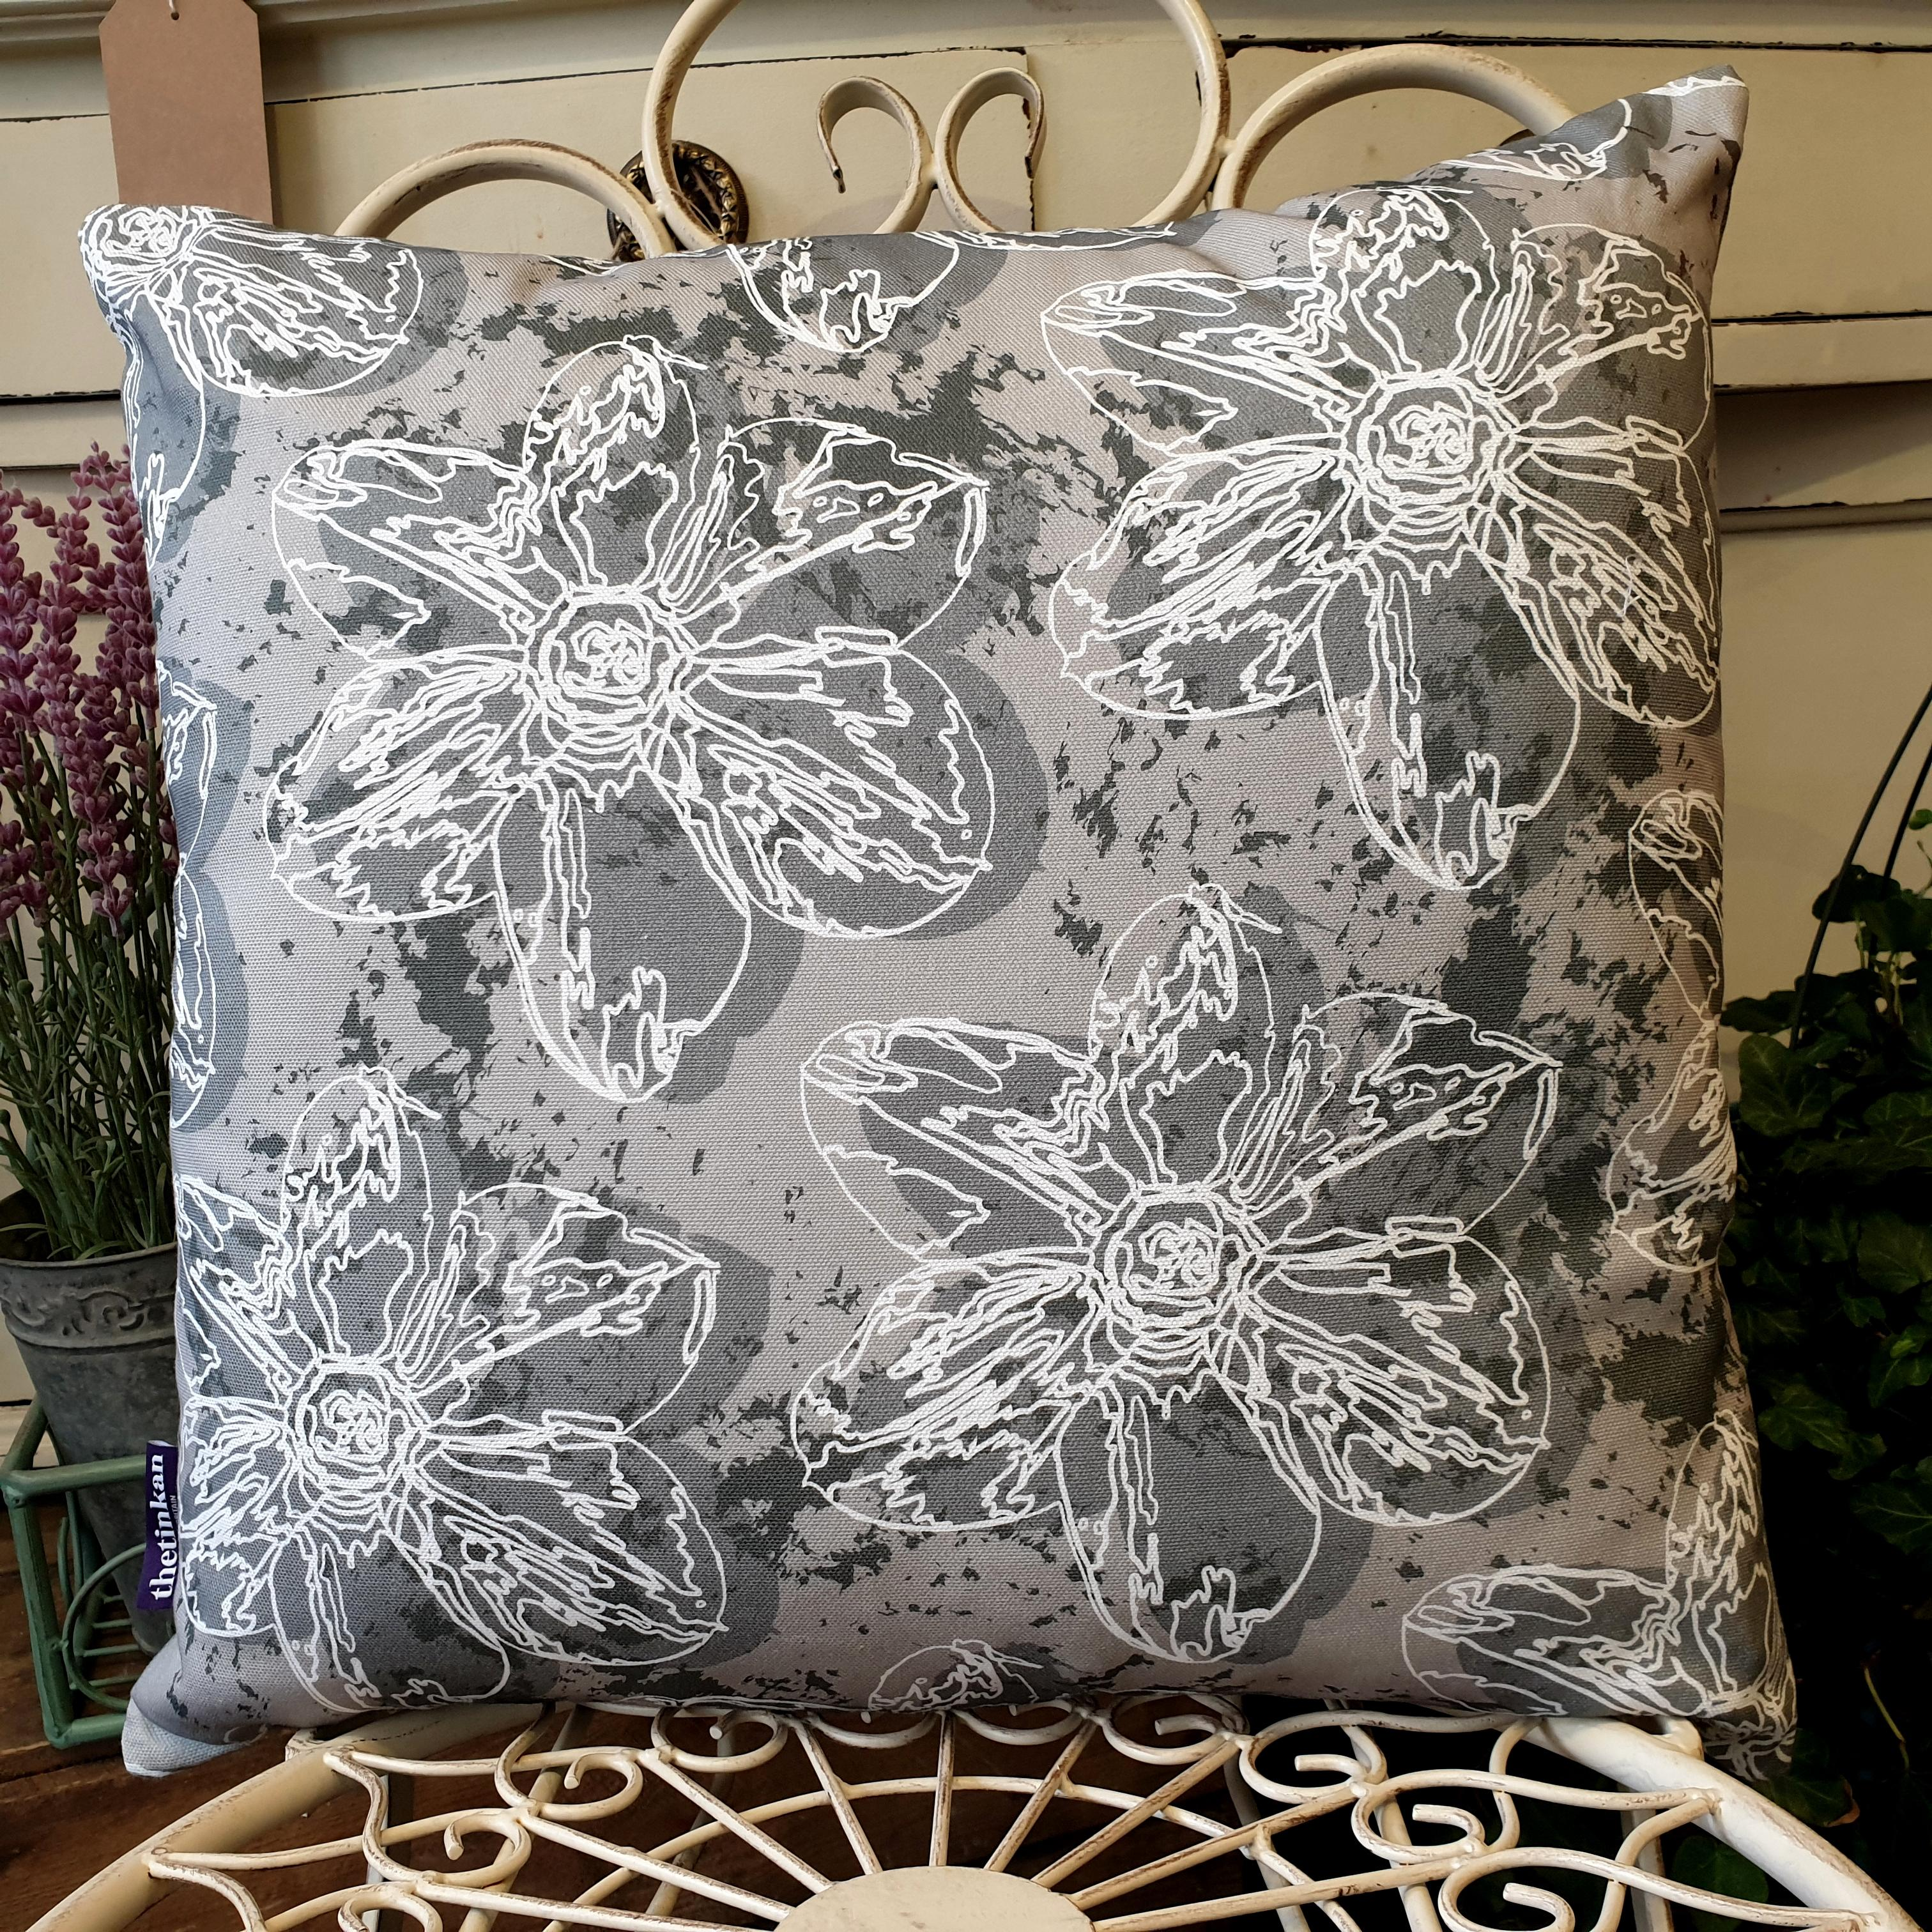 Double-sided 45cm square Flower Splash cushion designed by thetinkan. Dark grey narcissus flower with white traced outline set within a grey background with charcoal grey paint splashes. Available with an optional luxury cushion inner pad. VIEW PRODUCT >>